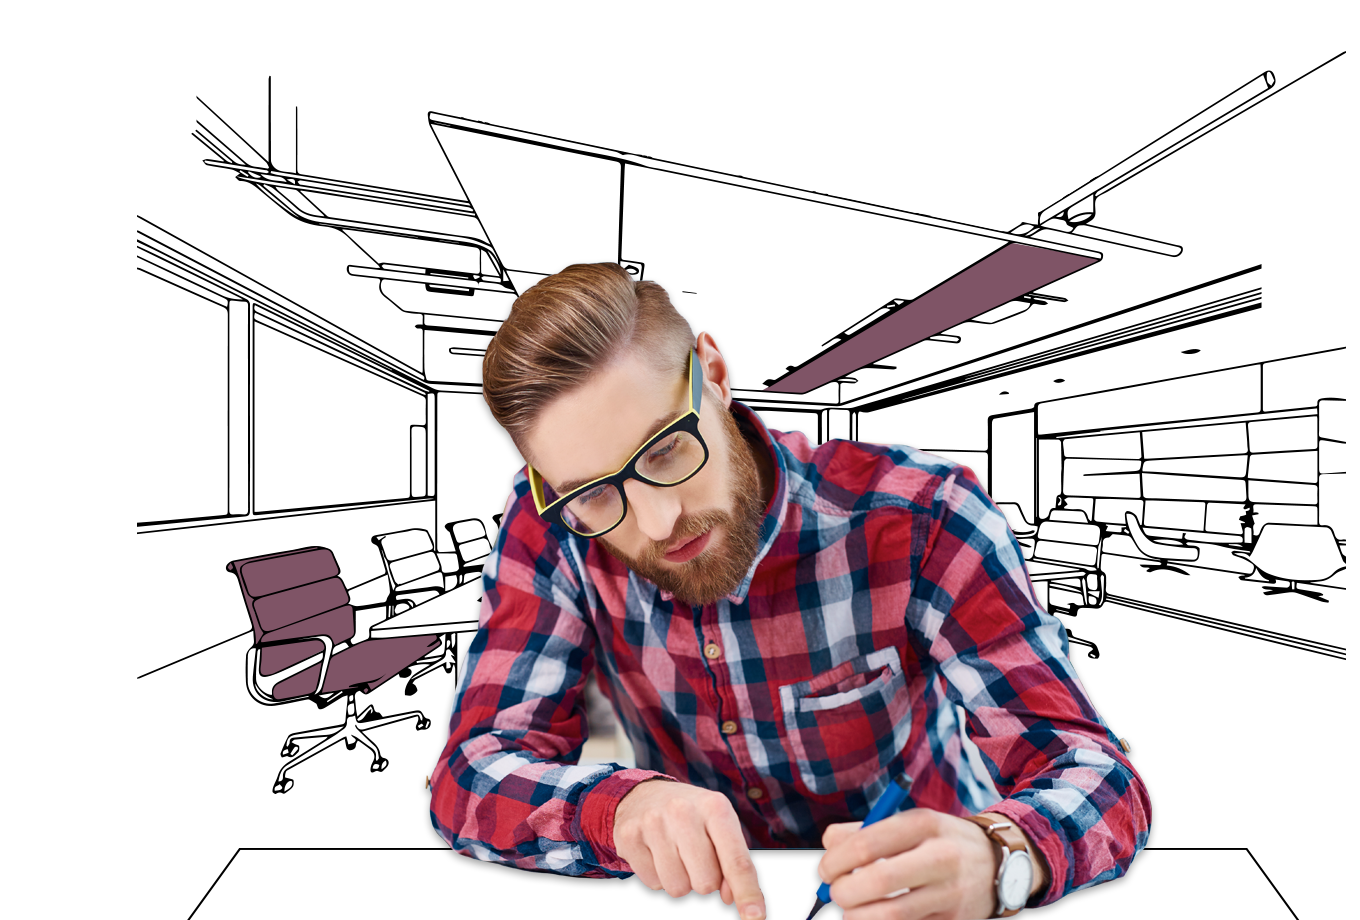 advertising agency insurance illustration of trendy office worker drawing designs